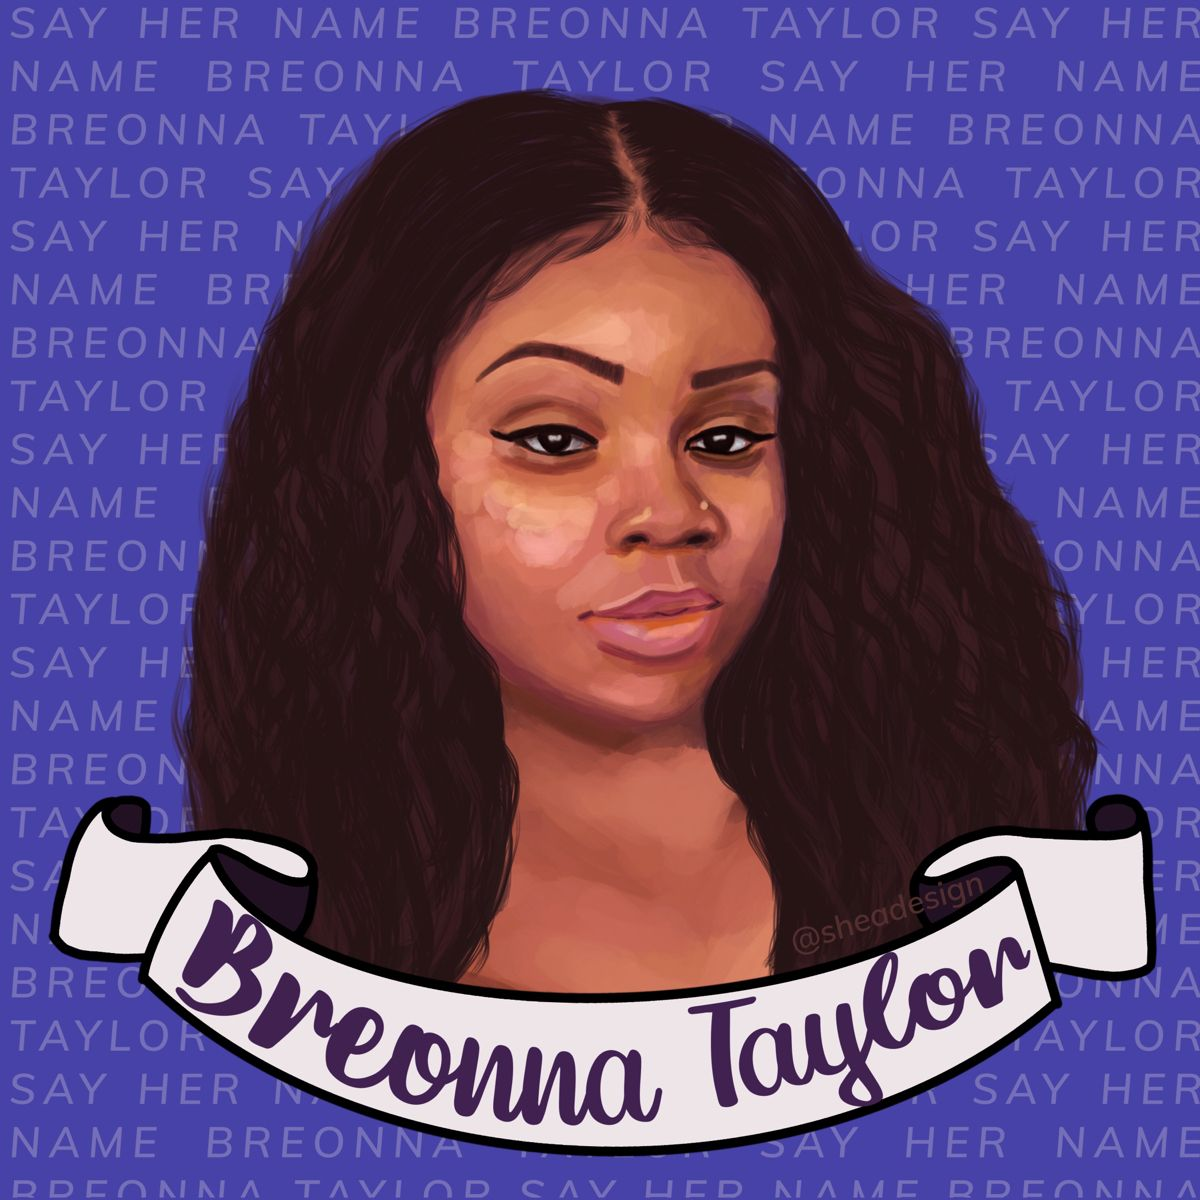 Breonna Taylor In 2020 Black Lives Matter Art Black Women Art Black Lives Matter